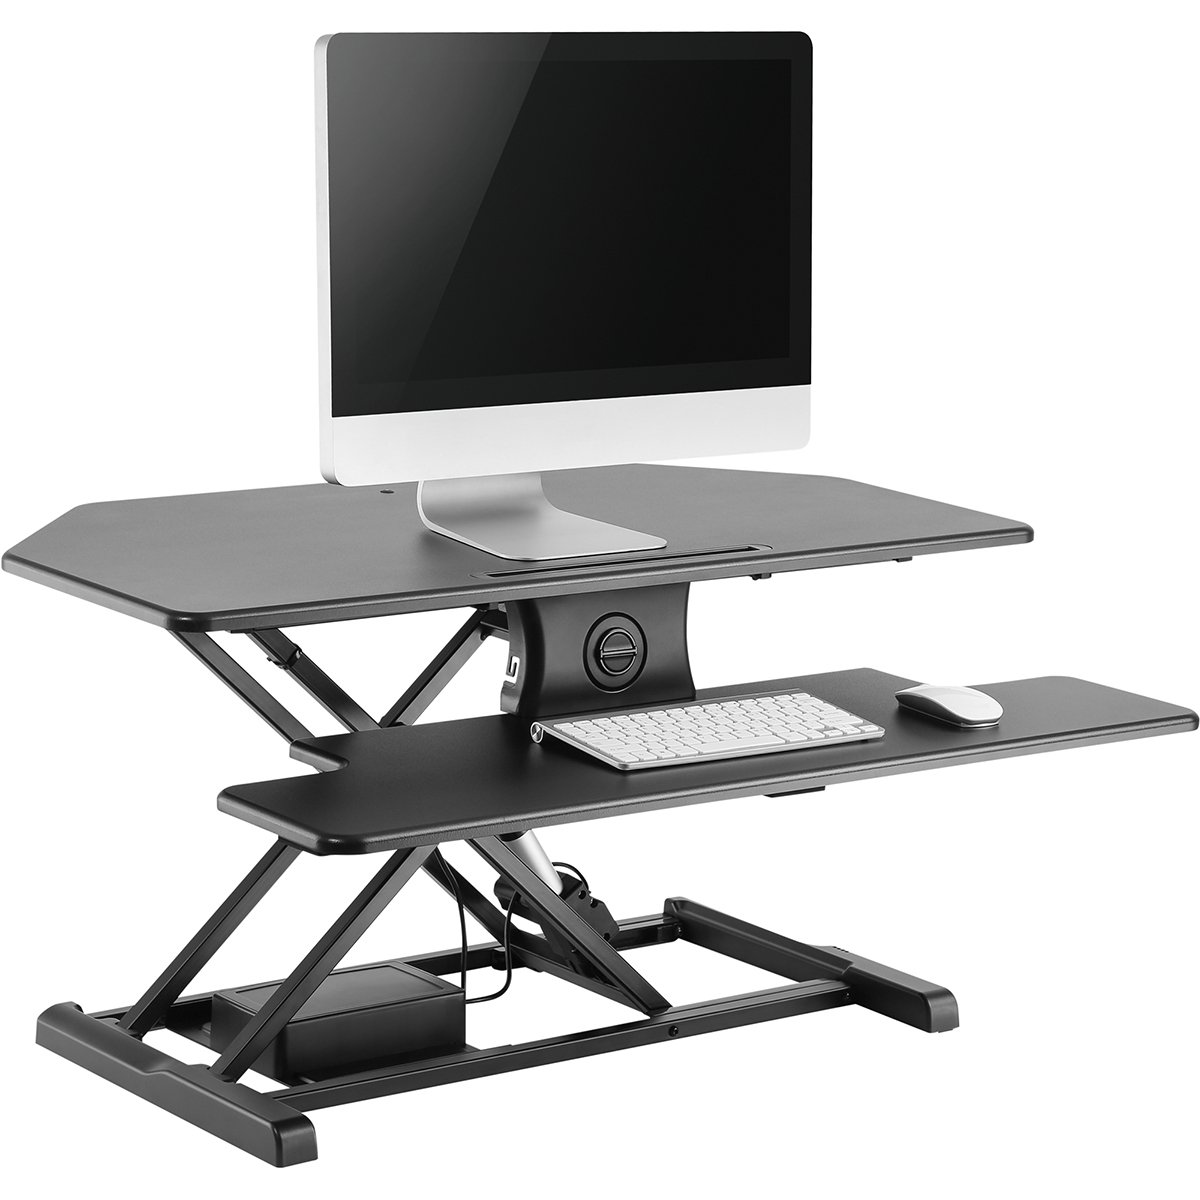 "AdvnUp 37.4"" 2-Tier Electric Ergonomic Corner Standing Desk Converter Riser, Motorized Height Adjustable Stand up Workstation, 44lbs Capacity 